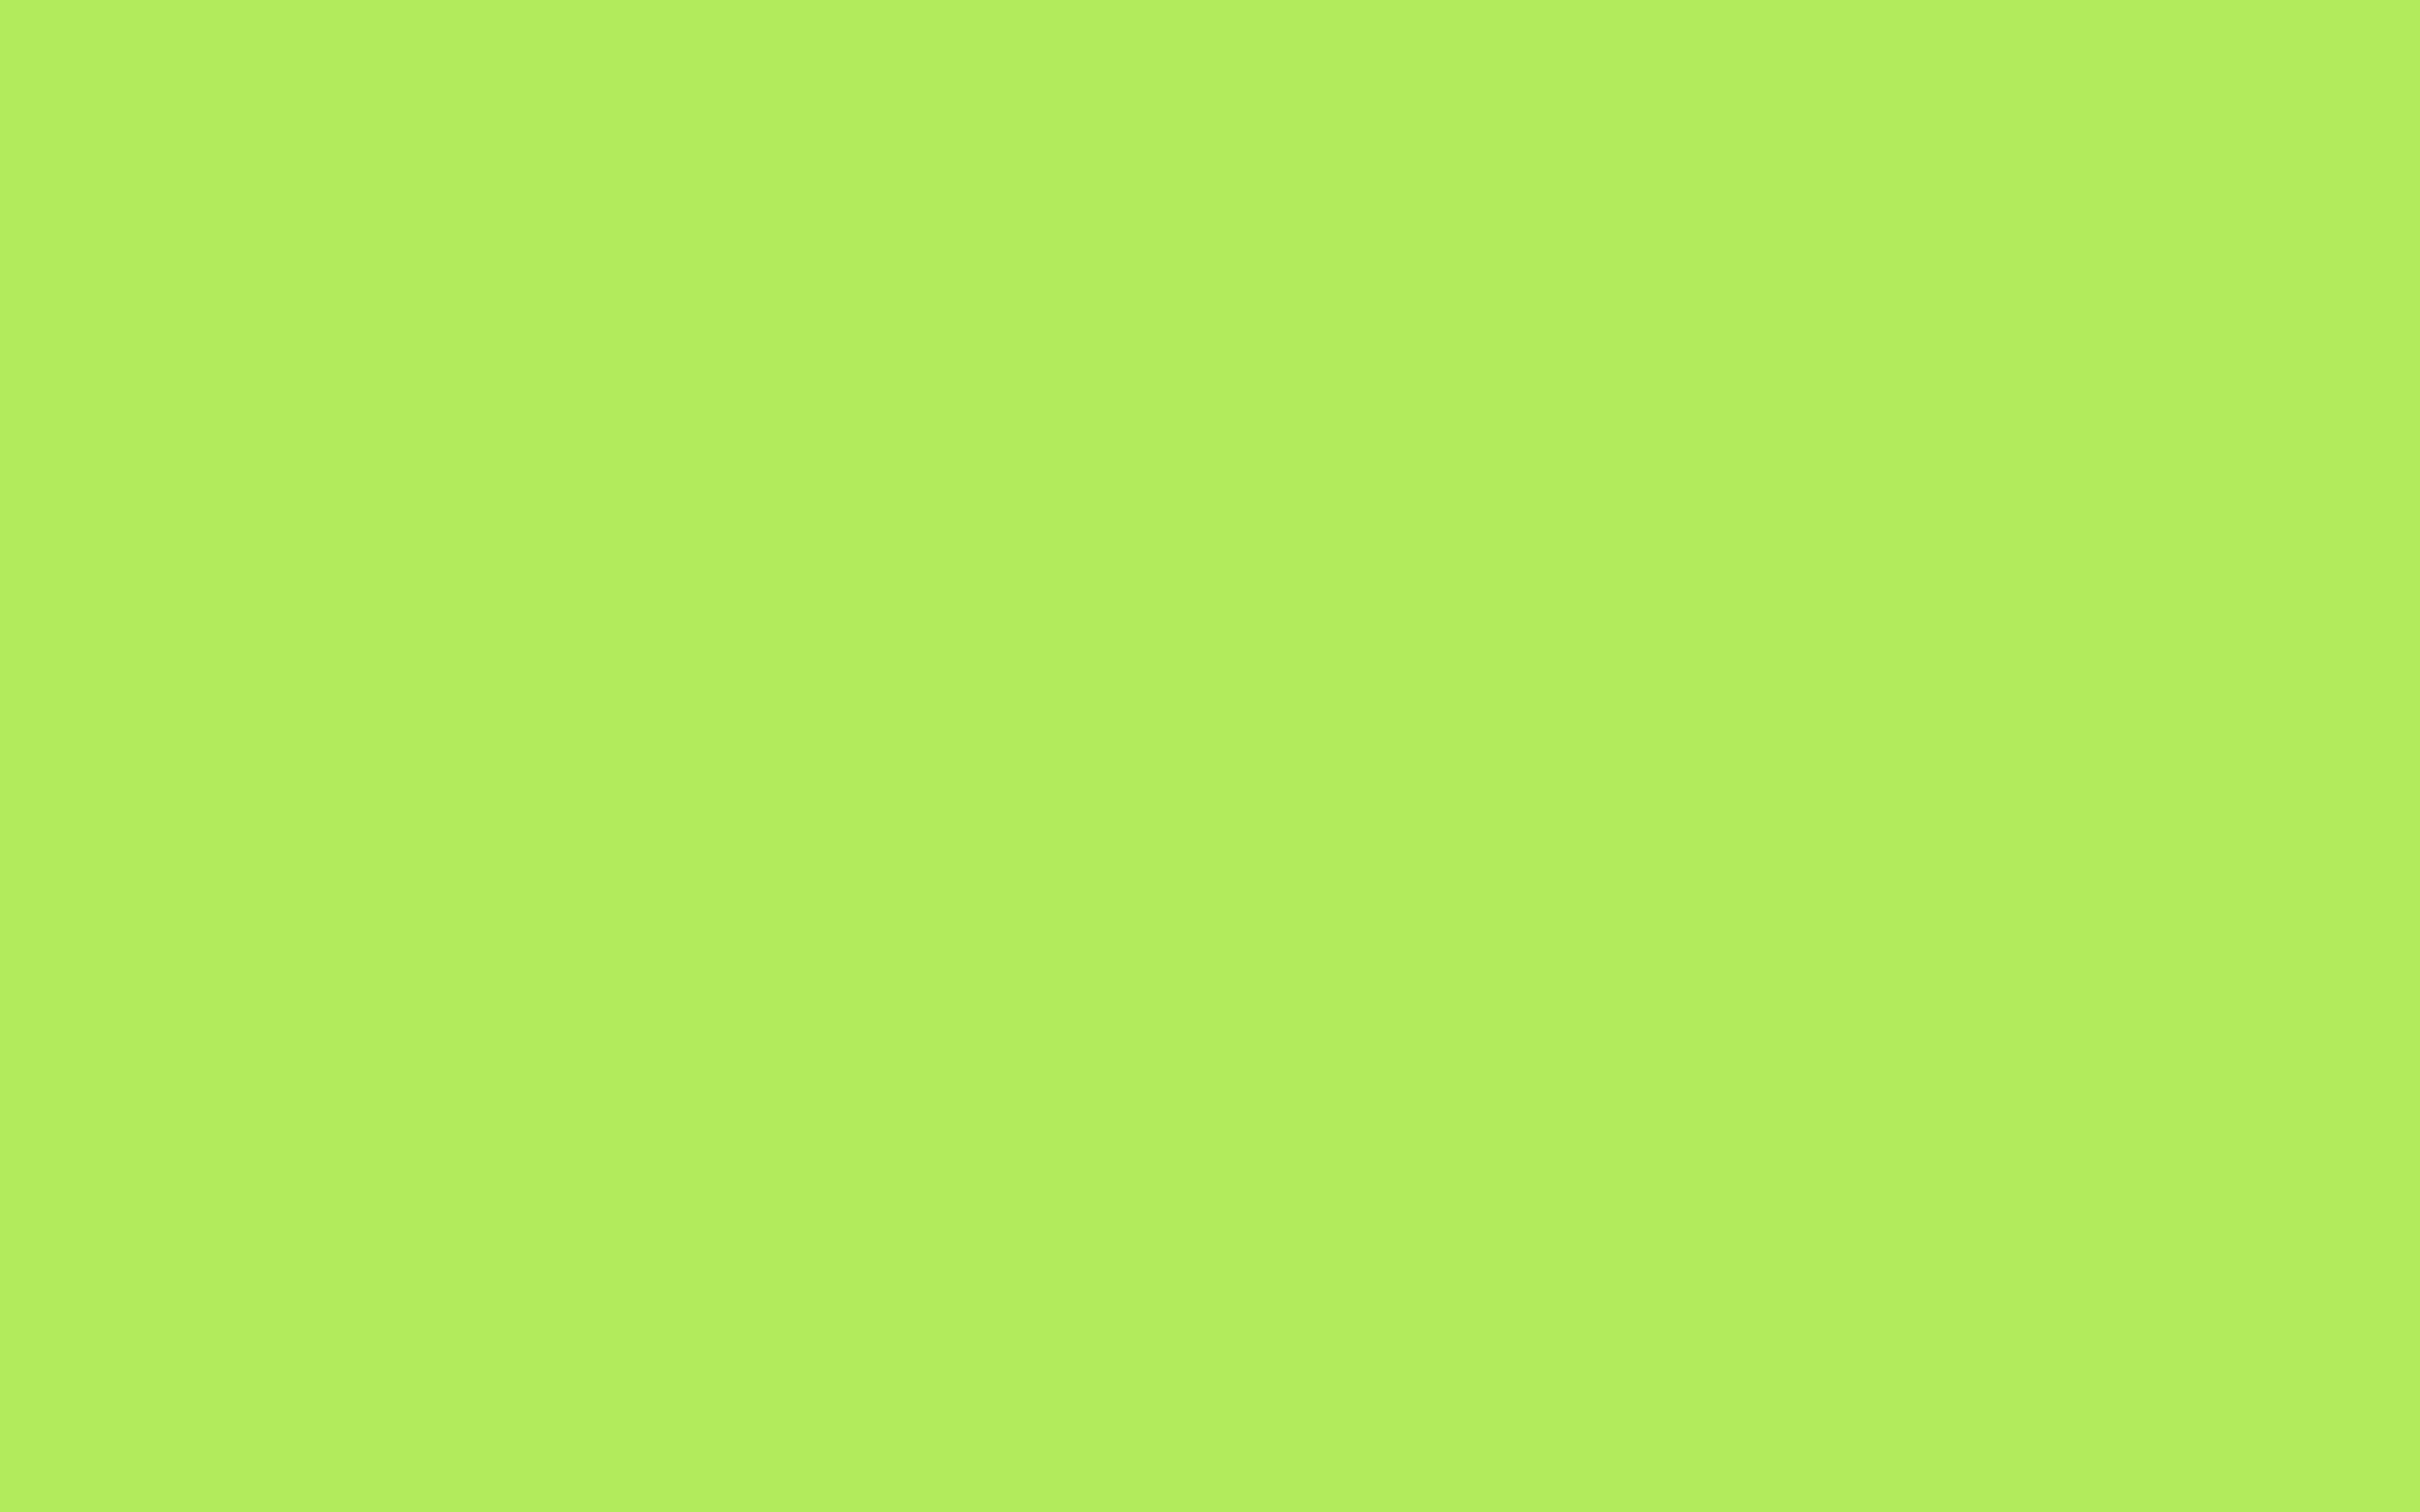 2560x1600 Inchworm Solid Color Background